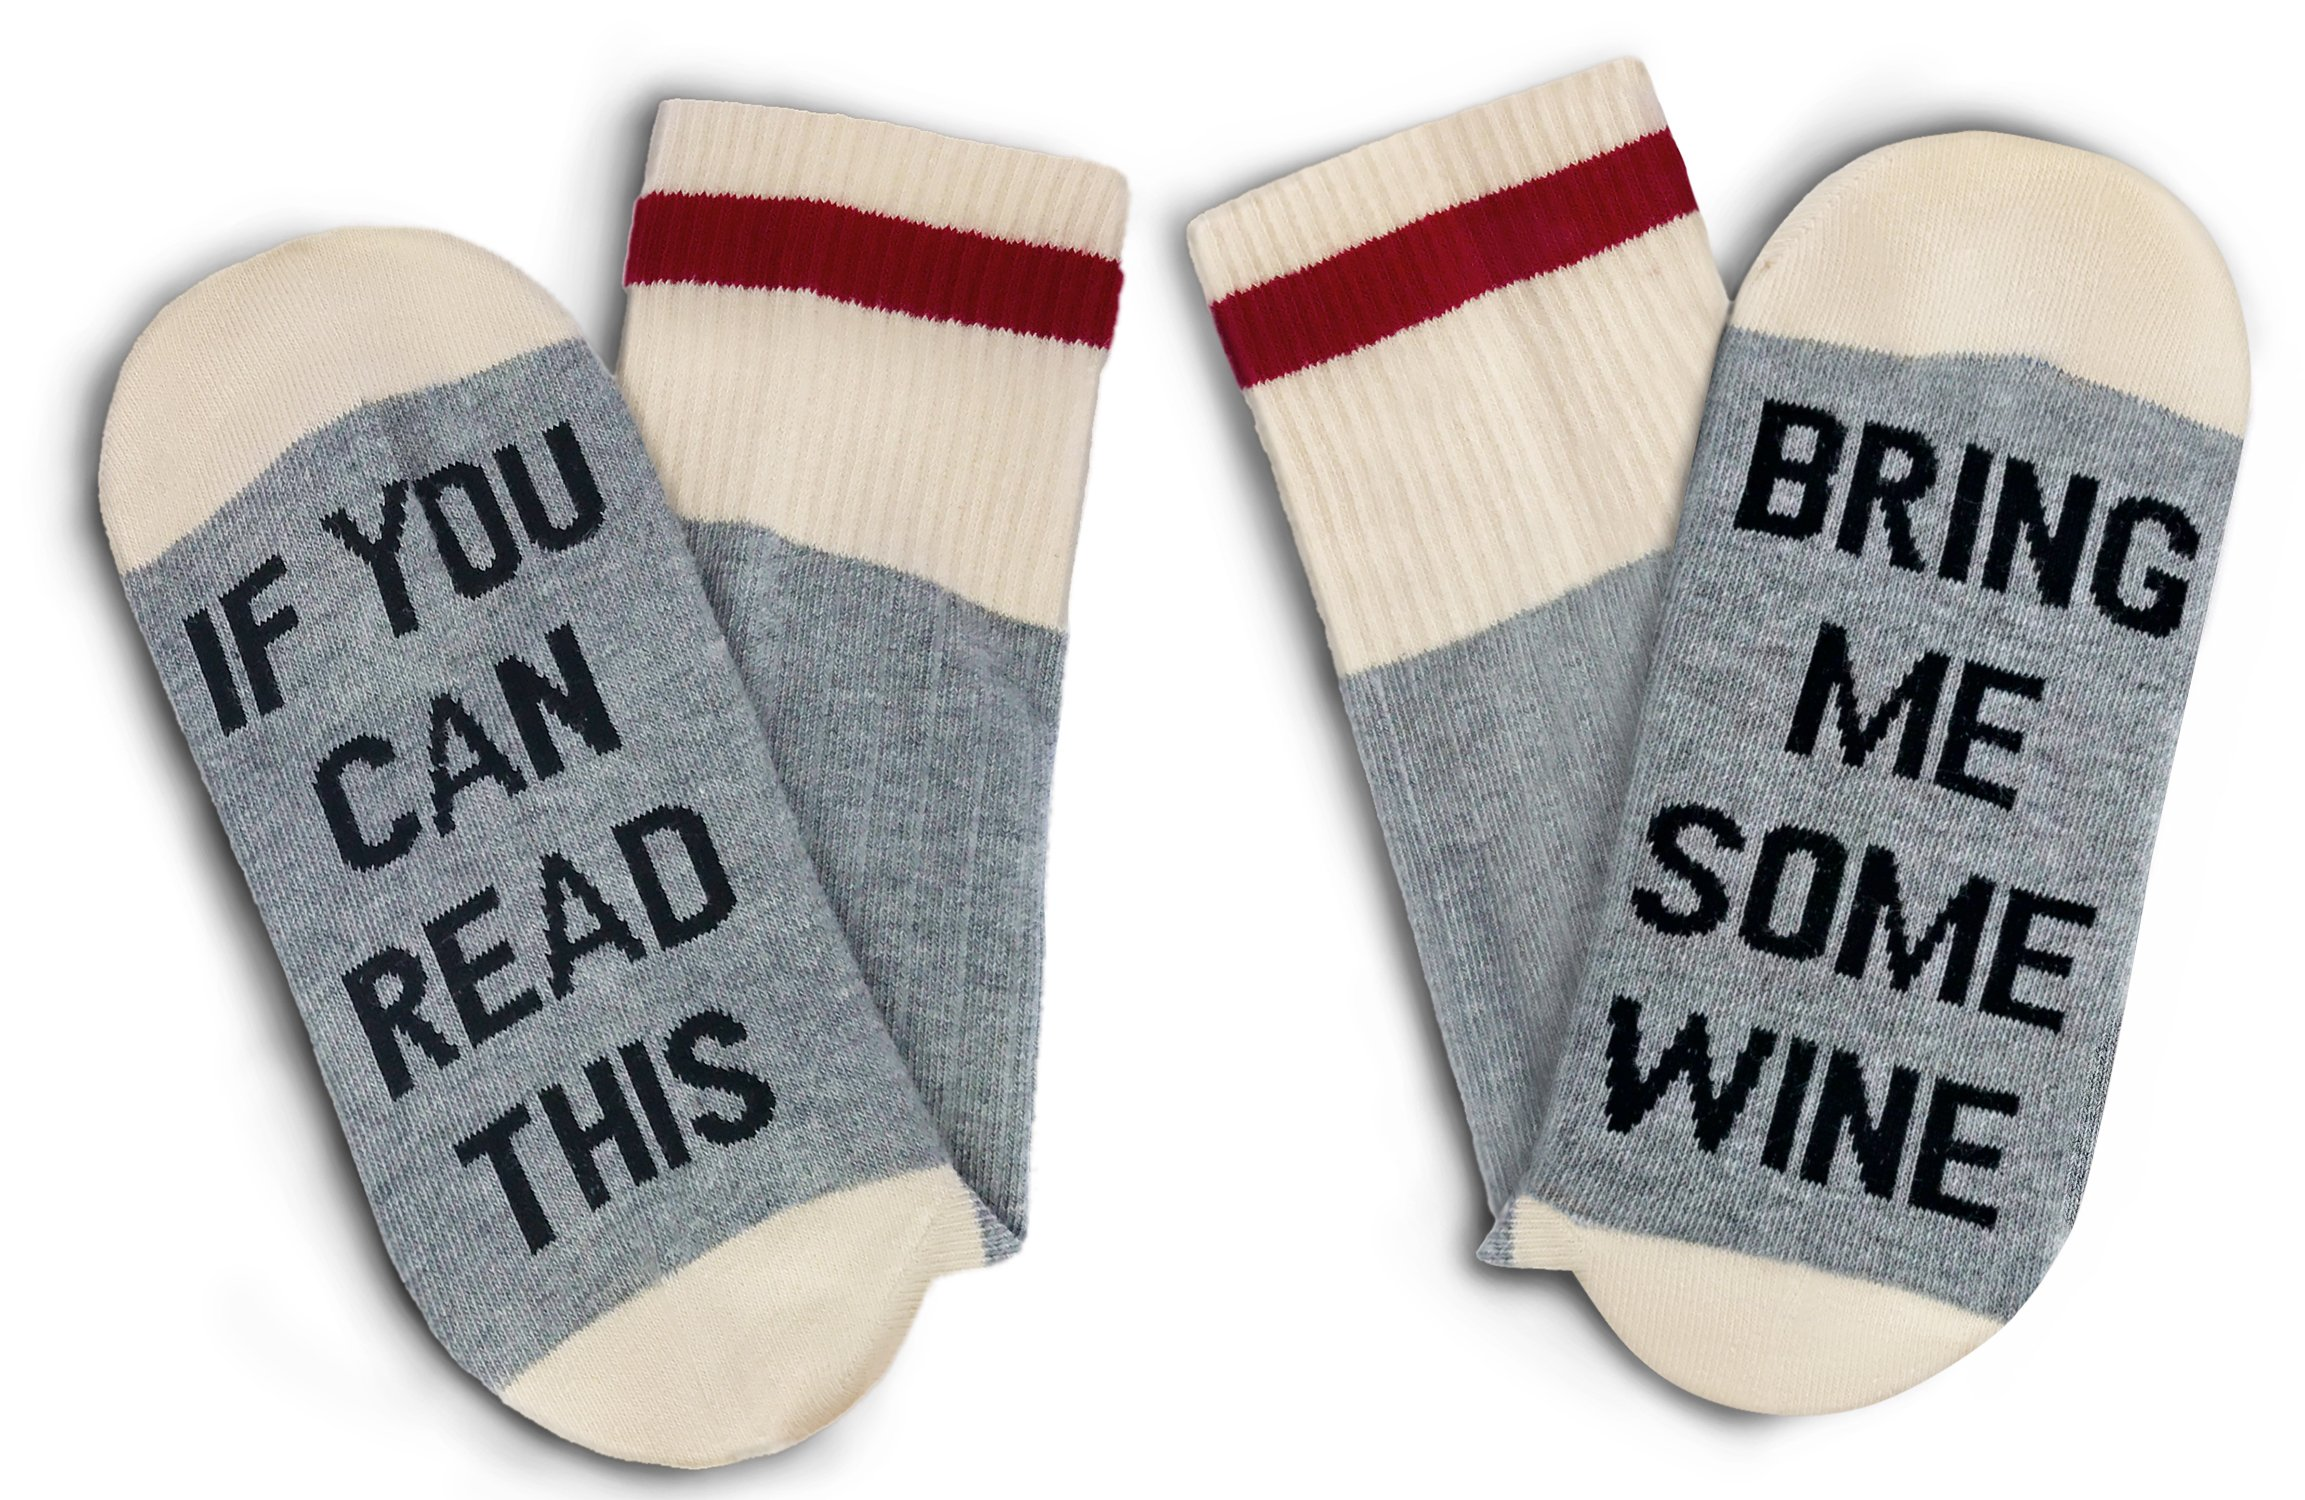 TheOnly Wine Gift Wine Socks - and Gift Box''If you can read this bring me some wine'' Perfect Christmas Gift for Wine Lovers, Birthdays, White Elephant, Mother Gift, Wife or Best Friend Wine Socks by The Only Gift Worth Giving (Image #7)